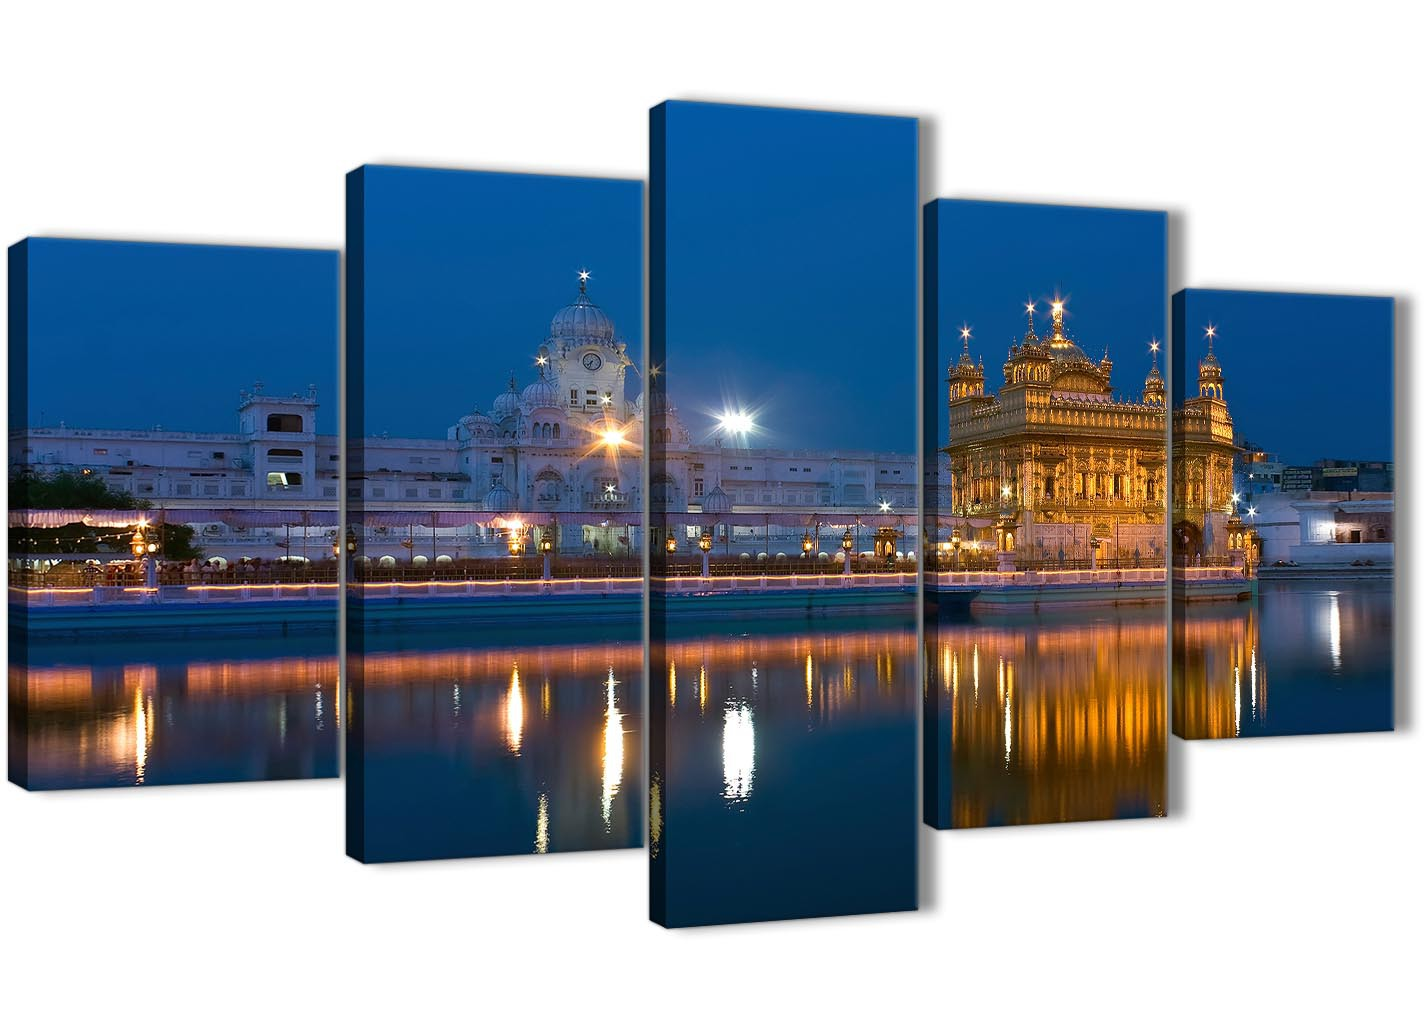 5 Panel Canvas Wall Art Pictures Sikh Golden Temple